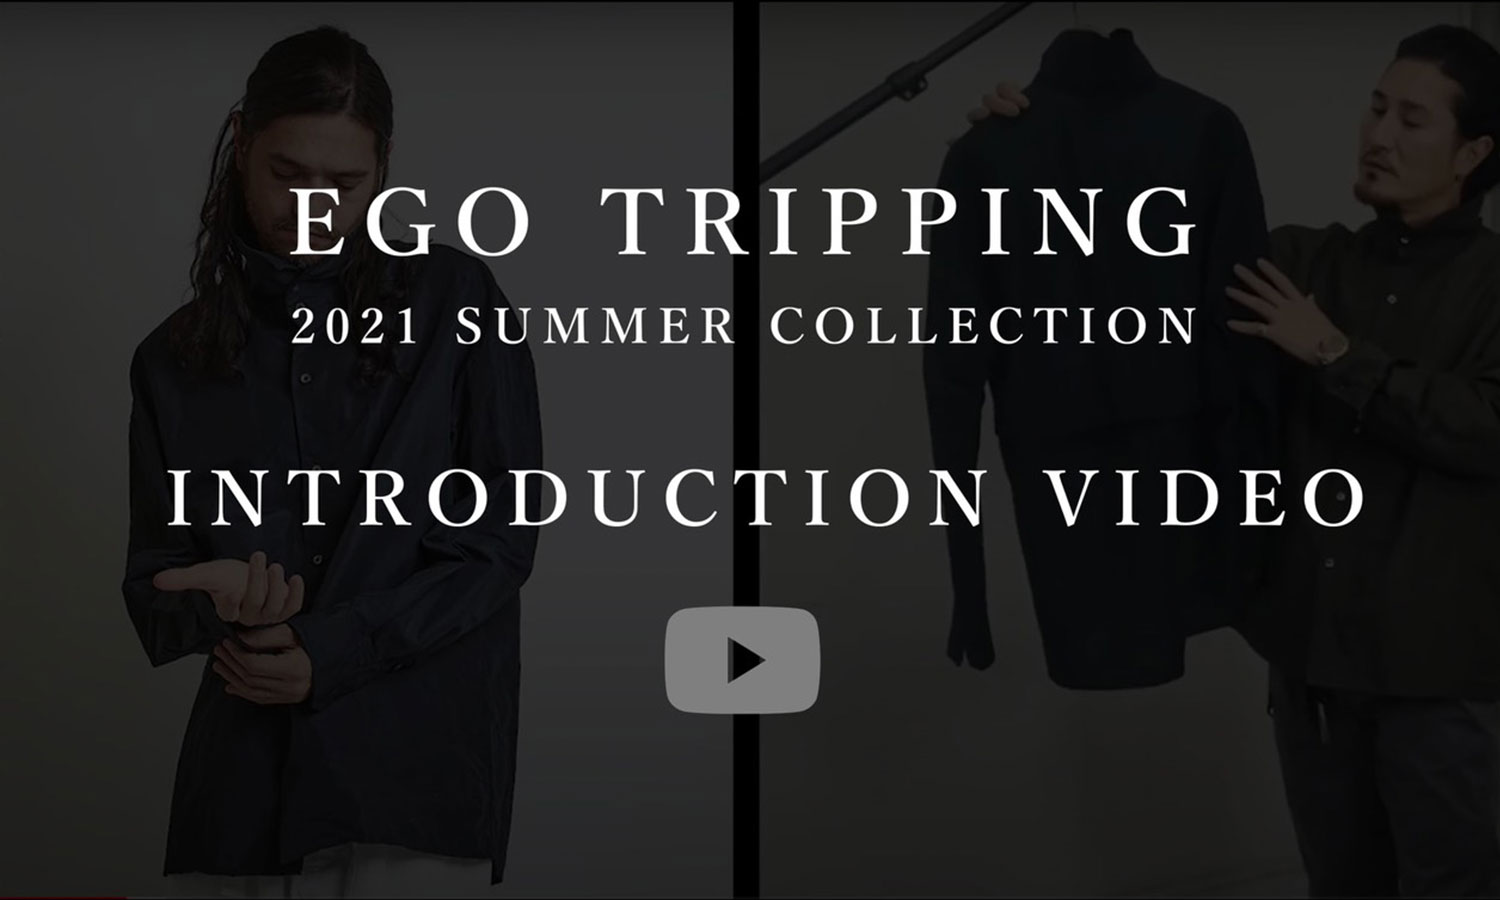 2021 SUMMER COLLECTION Introduction Video